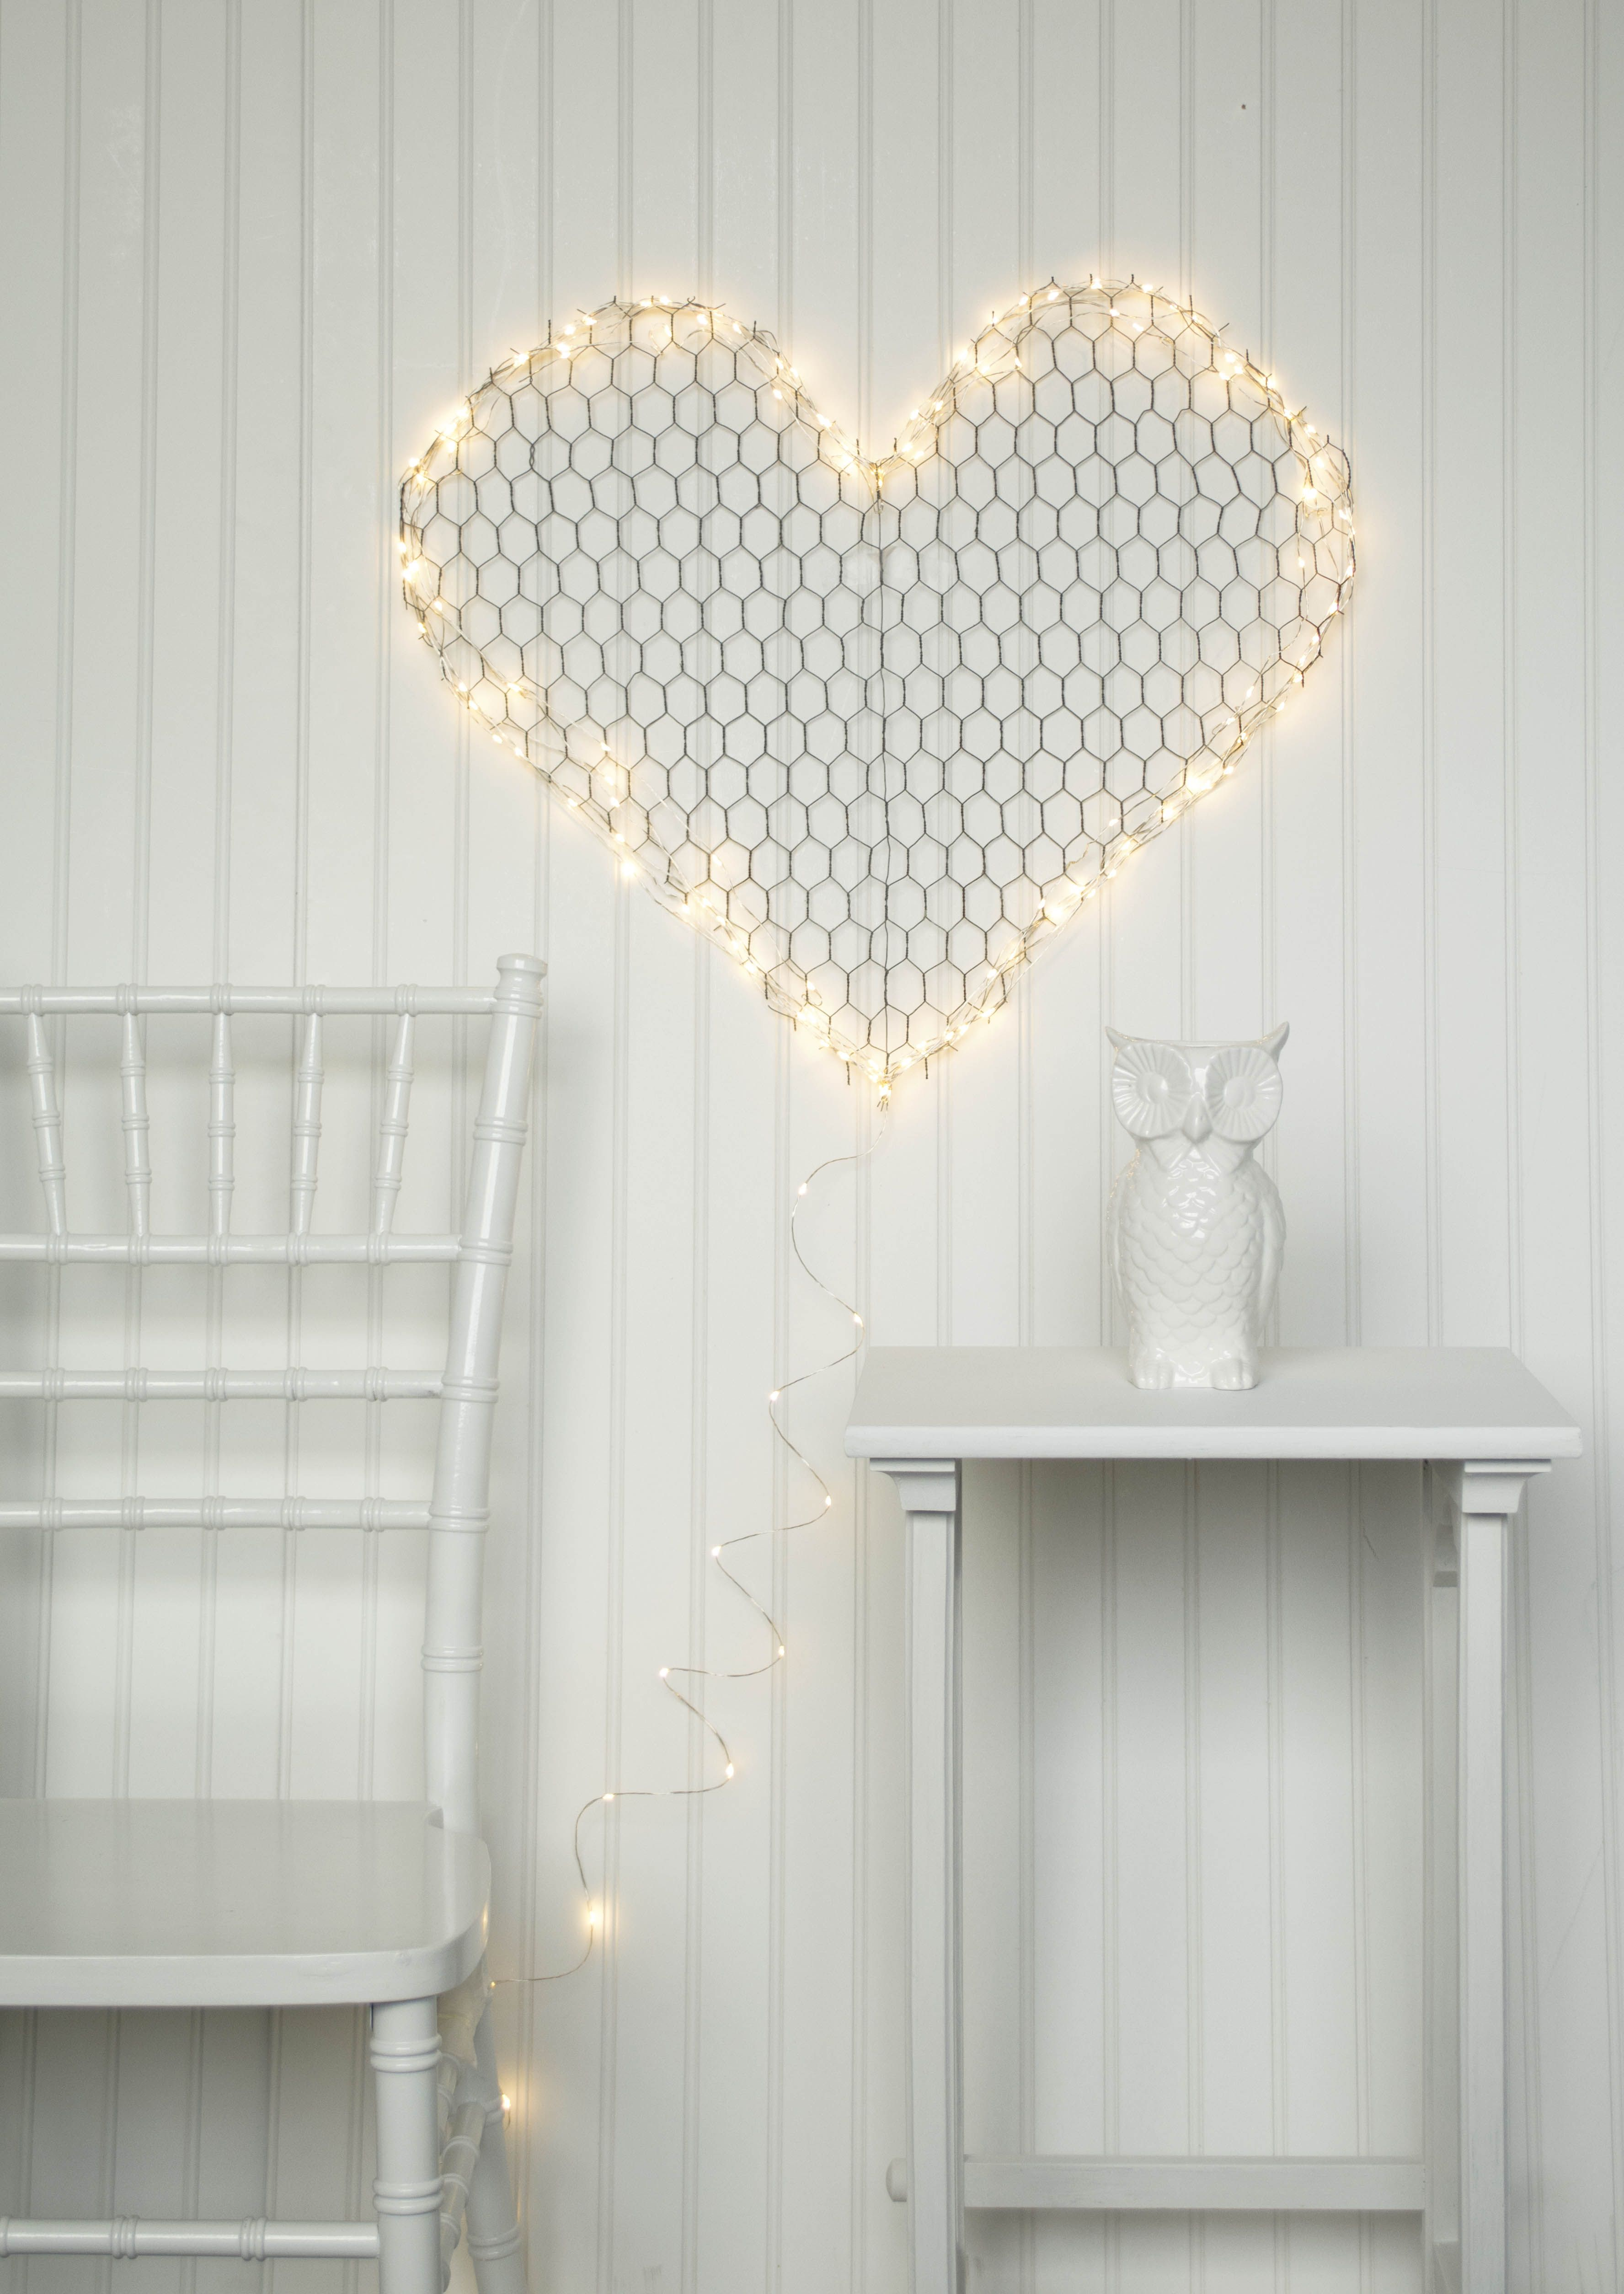 Create You Own Fantastical Light Sconces By Simply Wrapping Chicken Wire Forms In Extra Long Fairy Light Strands H Fairy Lights Led Fairy Lights Chicken Wire